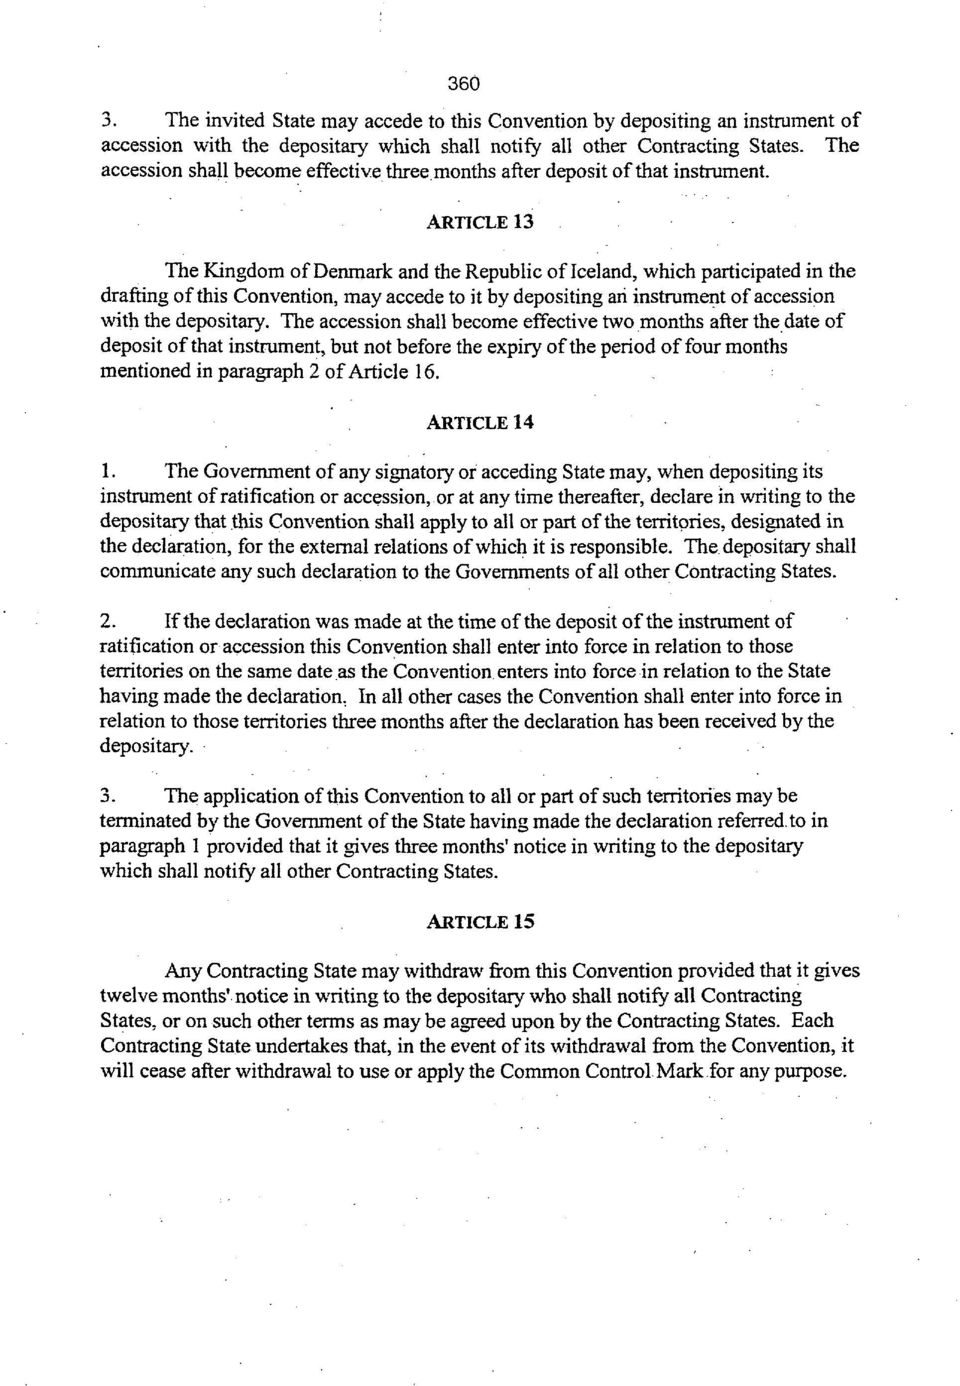 ARTICLE 13 The Kingdom of Denmark and the Republic of Iceland, which participated in the drafting of this Convention, may accede to it by depositing ari instrument of accession with the depositary.